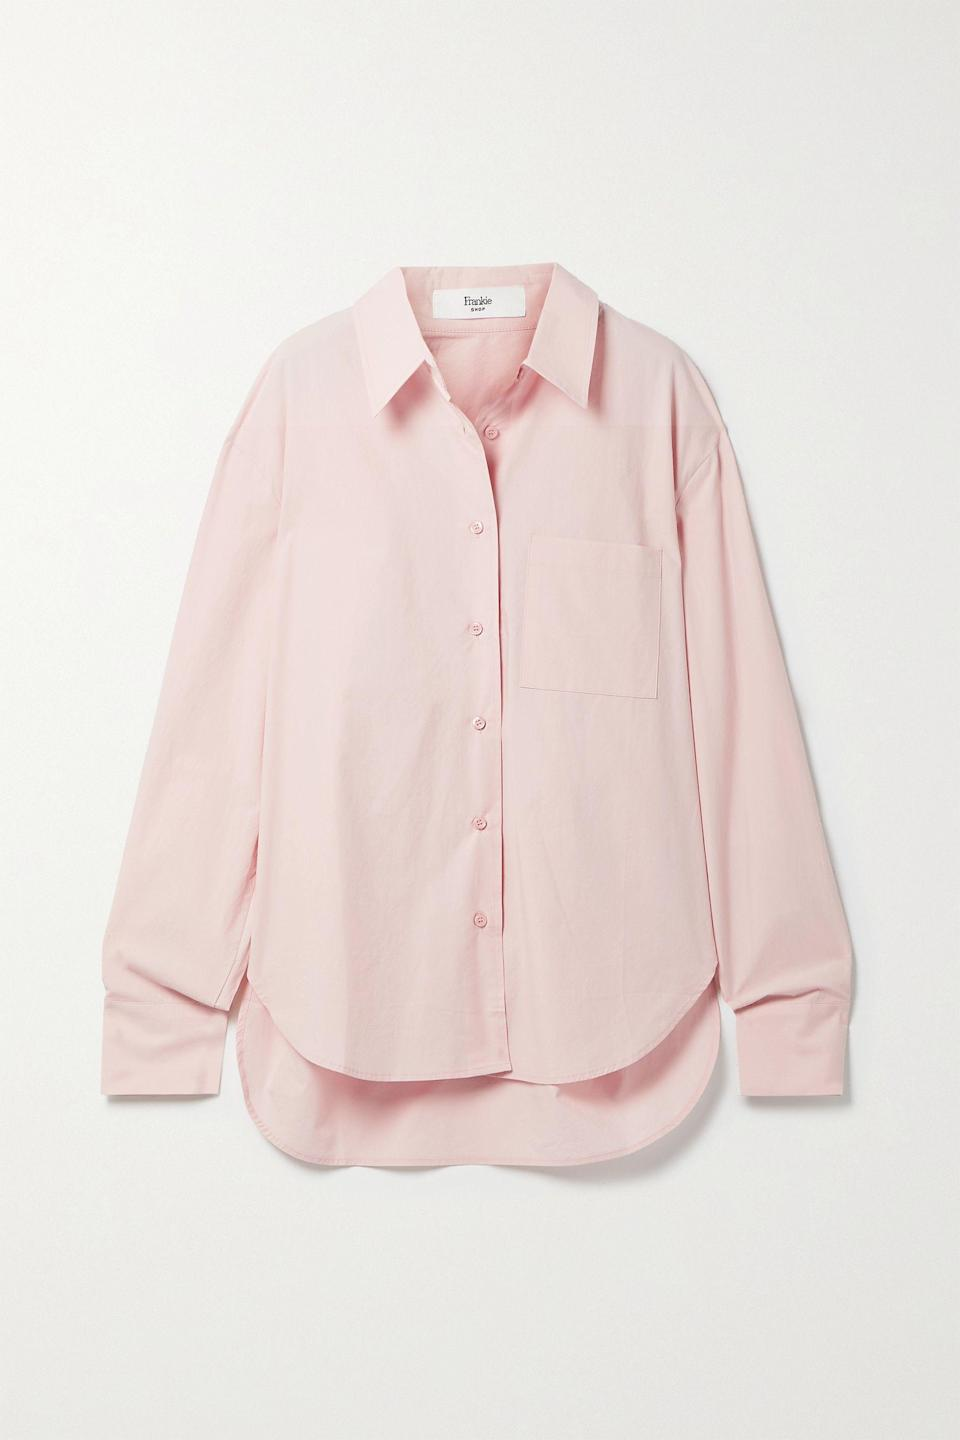 """<p><strong>Frankie Shop</strong></p><p>net-a-porter.com</p><p><strong>$185.00</strong></p><p><a href=""""https://go.redirectingat.com?id=74968X1596630&url=https%3A%2F%2Fwww.net-a-porter.com%2Fen-us%2Fshop%2Fproduct%2Ffrankie-shop%2Fclothing%2Fshirts%2Flui-organic-cotton-poplin-shirt%2F20346390235439863&sref=https%3A%2F%2Fwww.harpersbazaar.com%2Ffashion%2Ftrends%2Fg37184495%2Foversize-button-down-shirts%2F"""" rel=""""nofollow noopener"""" target=""""_blank"""" data-ylk=""""slk:Shop Now"""" class=""""link rapid-noclick-resp"""">Shop Now</a></p><p>Sometimes, influencer-beloved items aren't worth the hype. Purchasing Frankie Shop's Liu shirt isn't one of those times. The brand's cotton poplin is lighter than air, while its high-low hem is made for a subtle French tuck. Just don't forget the matching boxer shorts.</p>"""